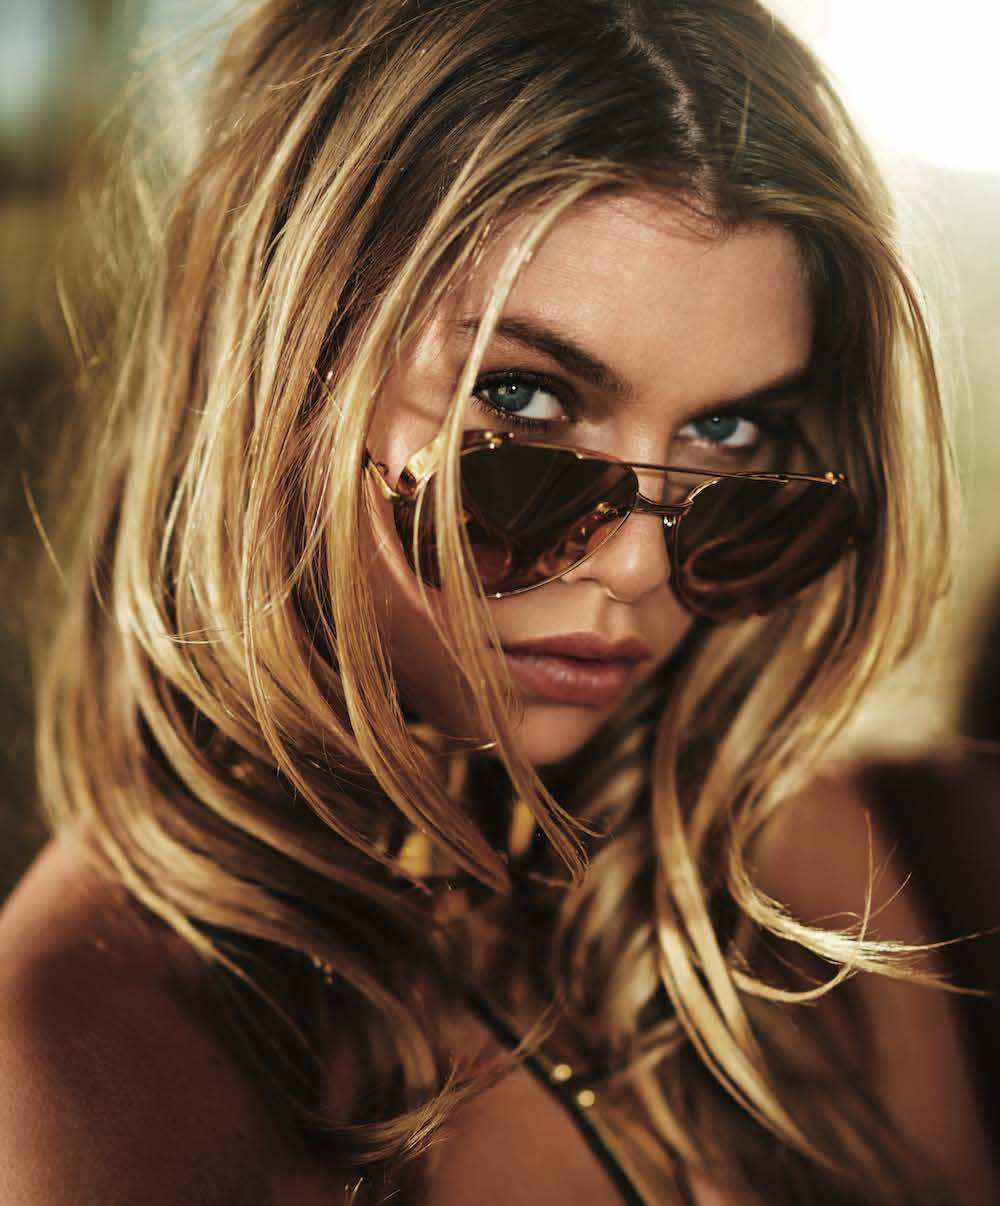 Stella Maxwell bares all for Maxim photoshoot; tops Maxim Hot 100